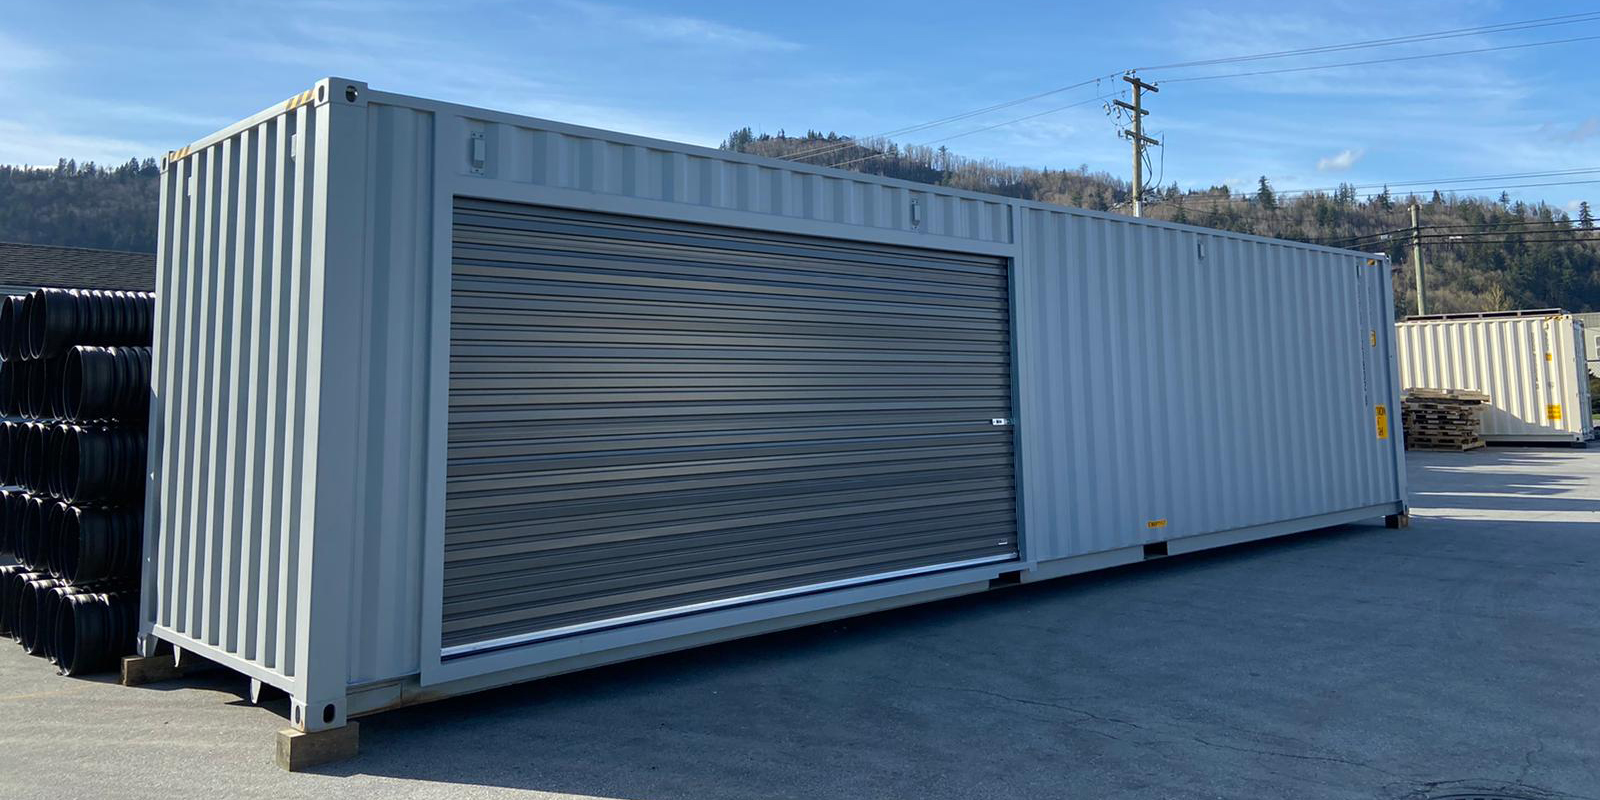 40ft Shipping Containers Dimensions and Ideal Use Cases - TargetBox - Article - 01